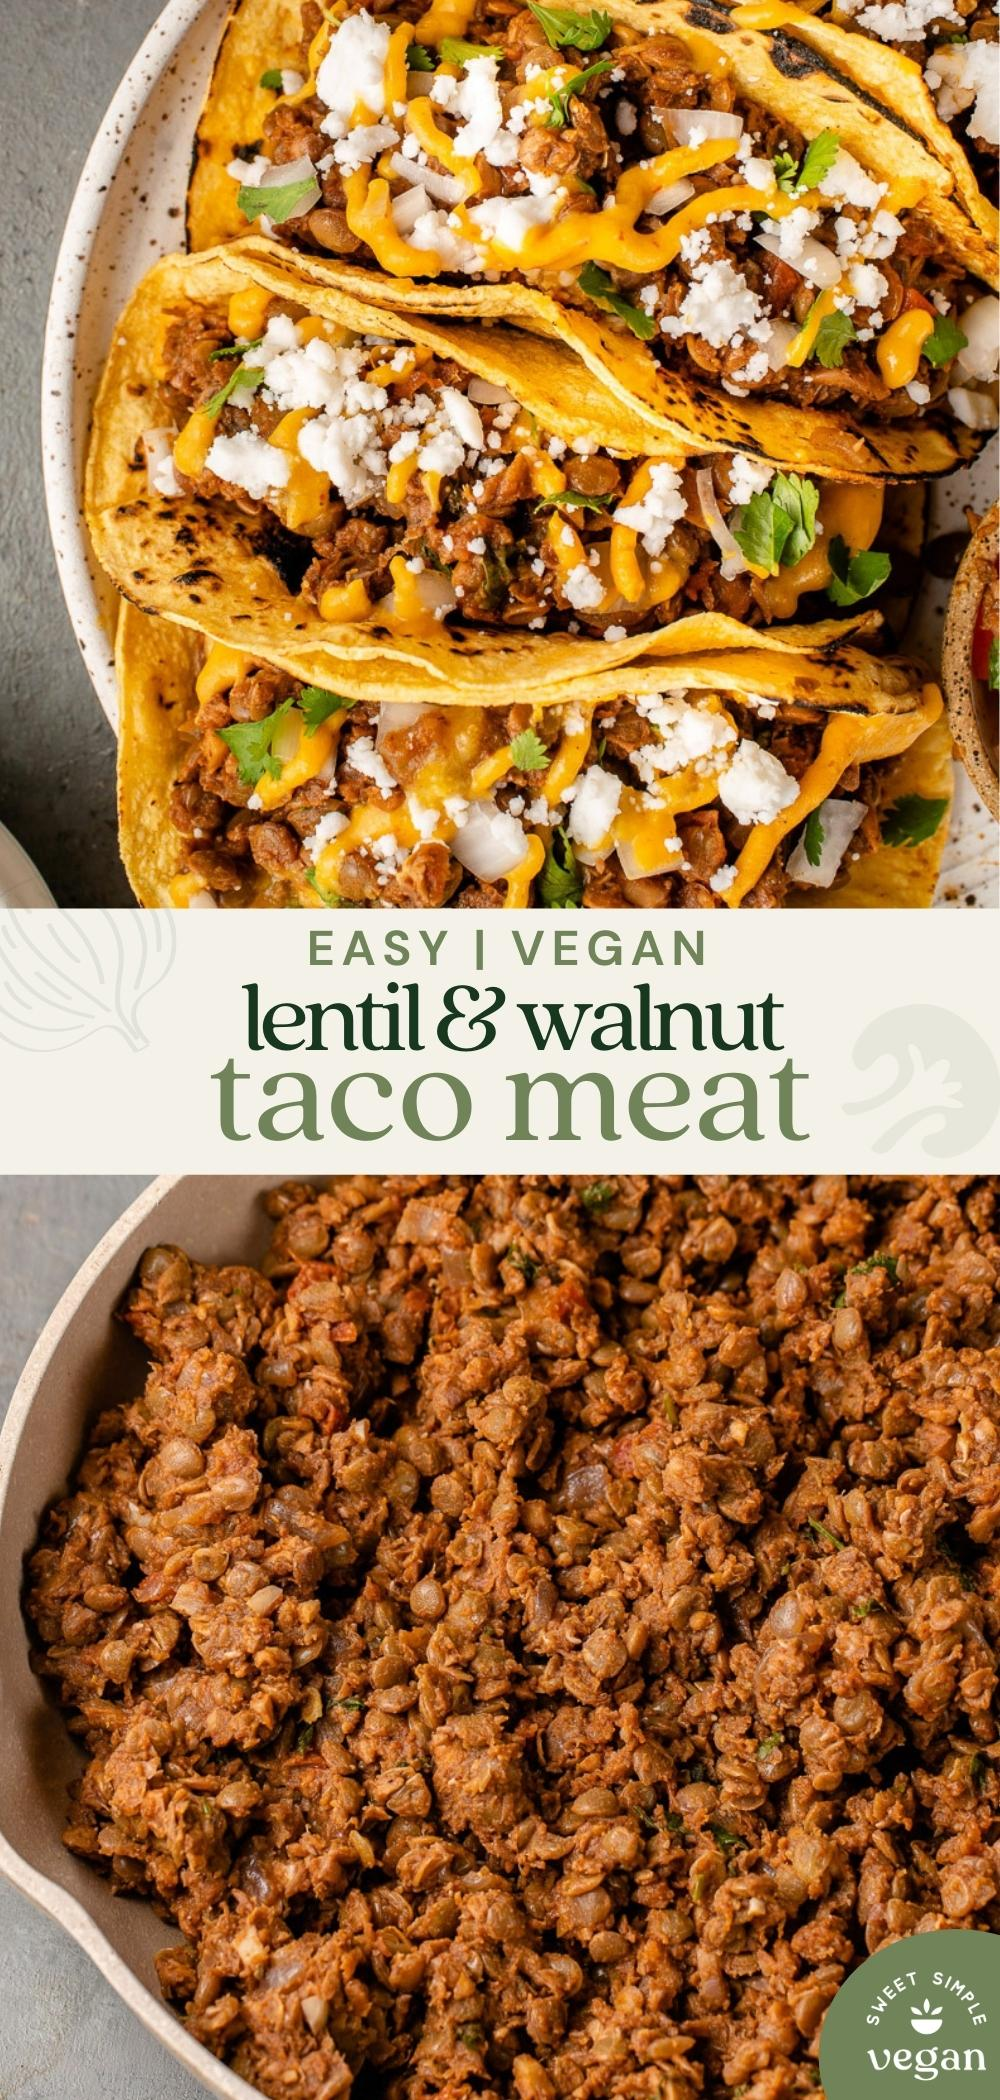 pinterest image with unclose over head image of taco meat and plated tacos